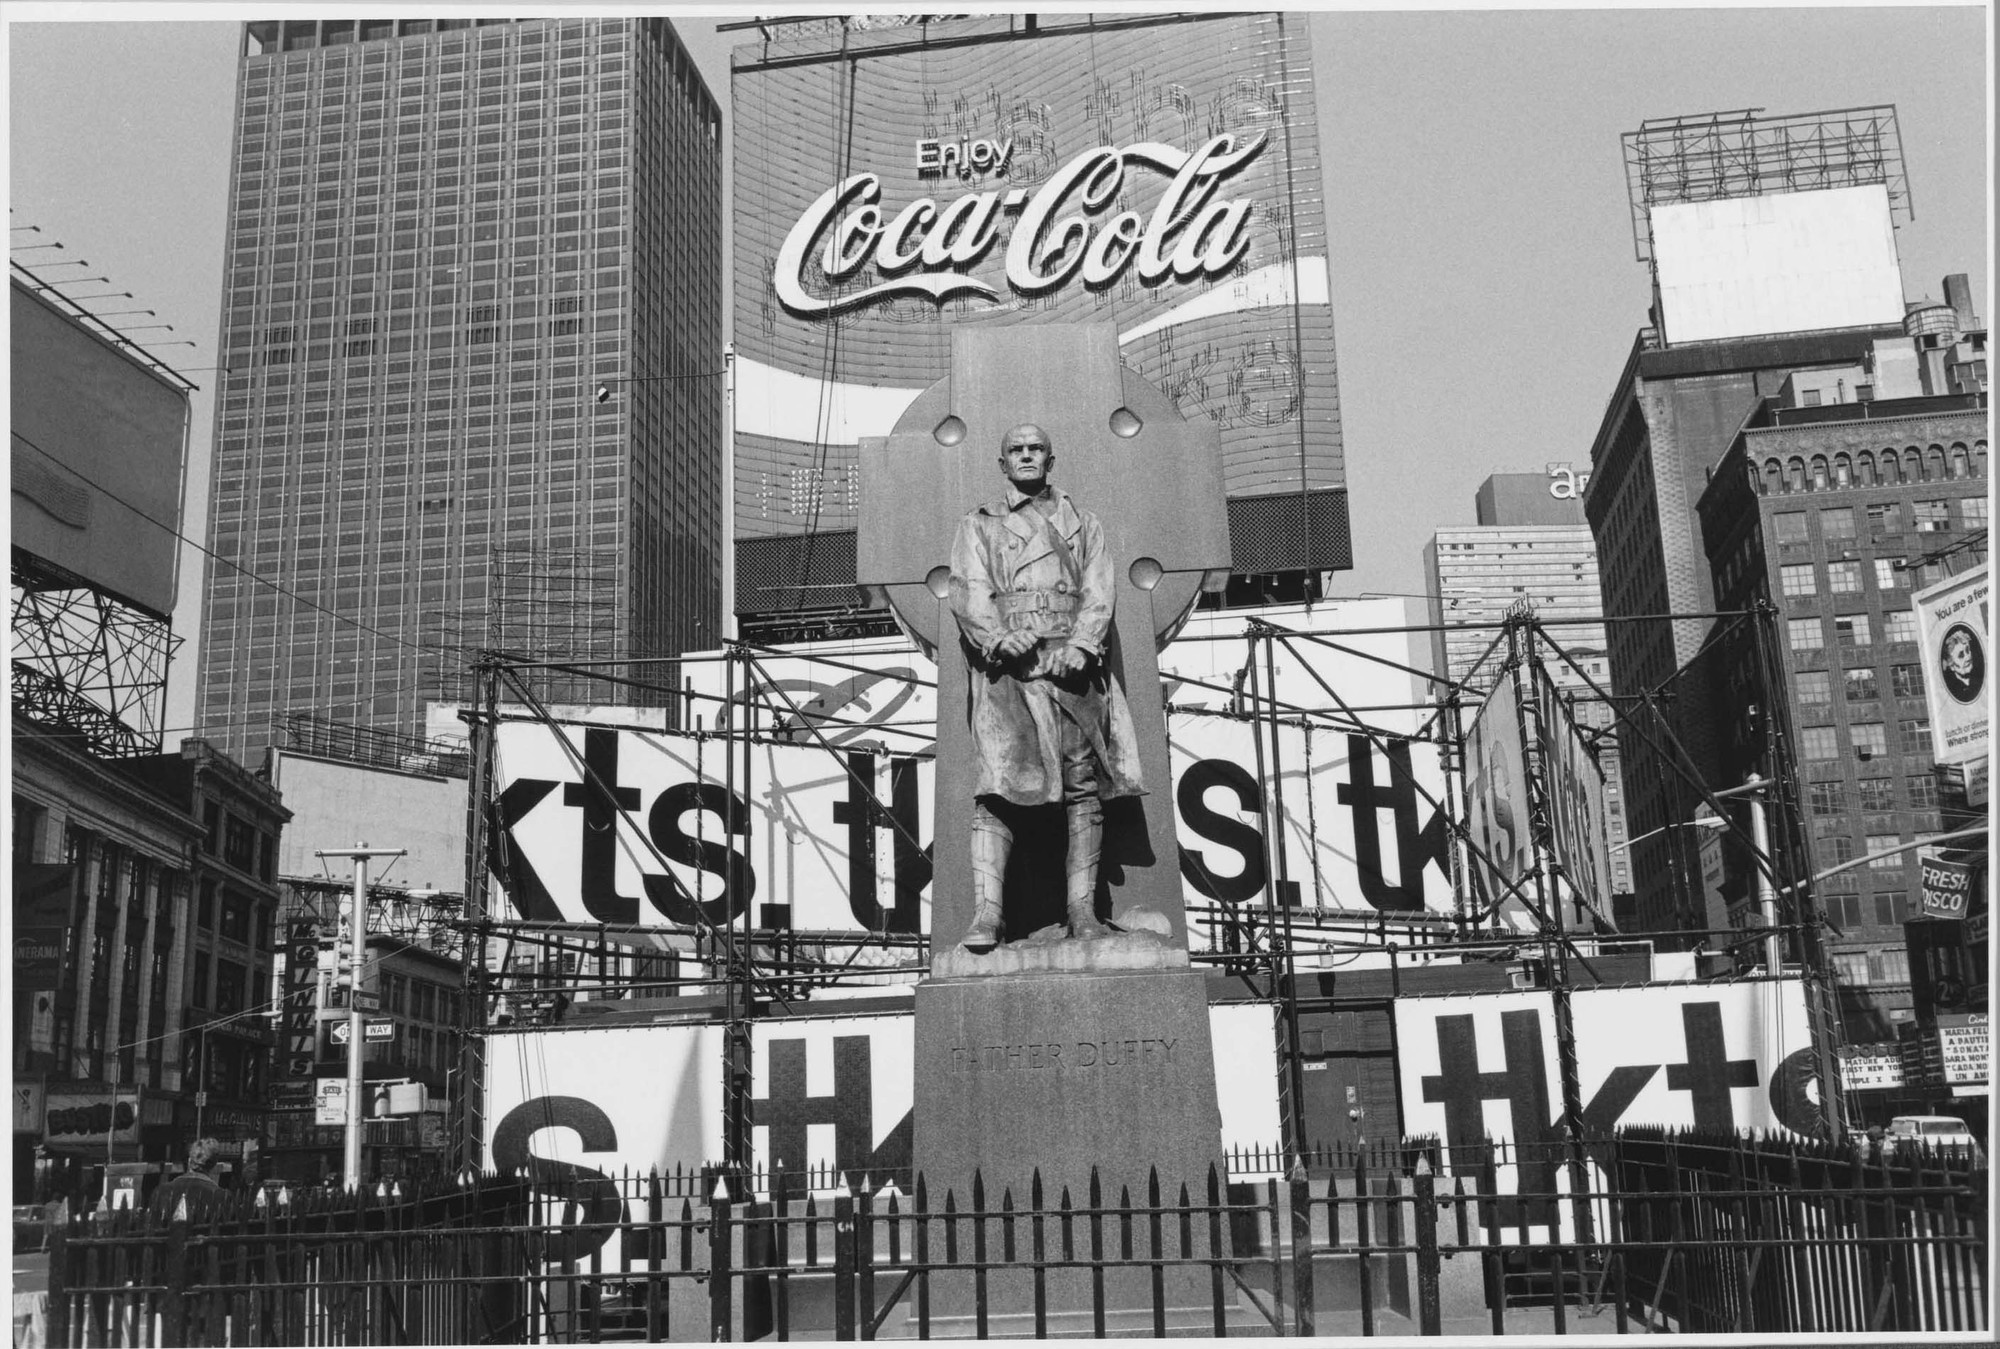 Lee Friedlander. Father Duffy. Times Square, New York City. 1974. Gelatin silver print, 71⁄2 × 11 1/4″ (19.1 × 28.5 cm). The Museum of Modern Art, New York. Purchase. © 2005 Lee Friedlander